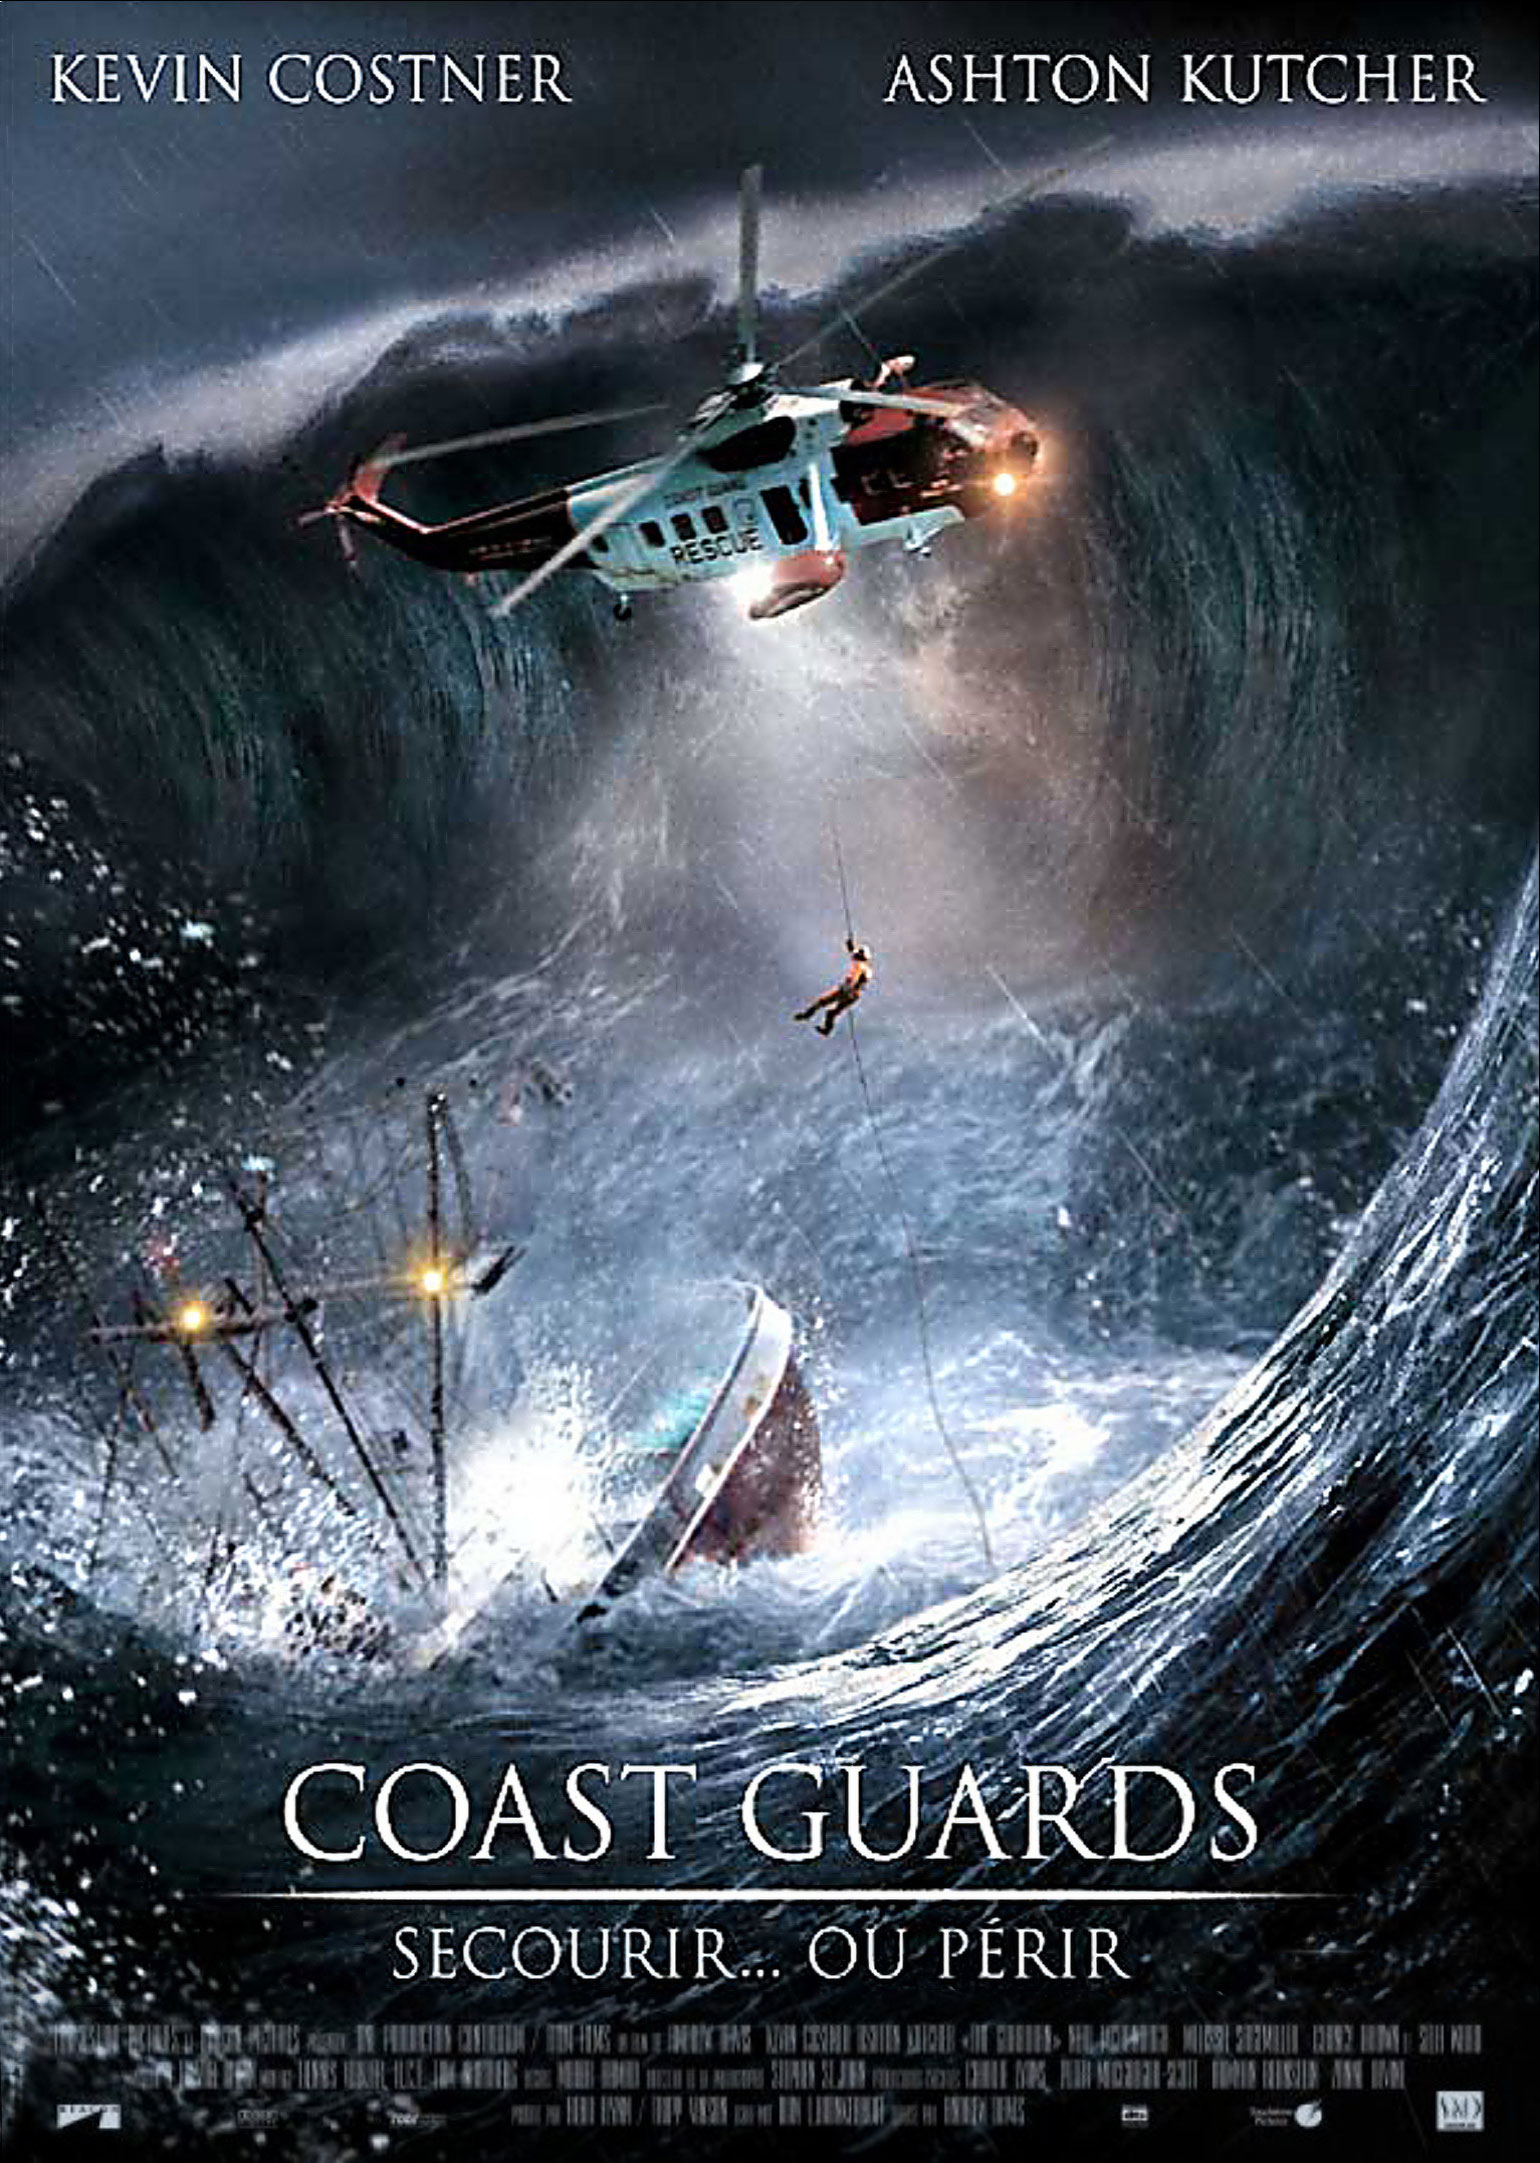 coast guards affiche disney poster touchstone